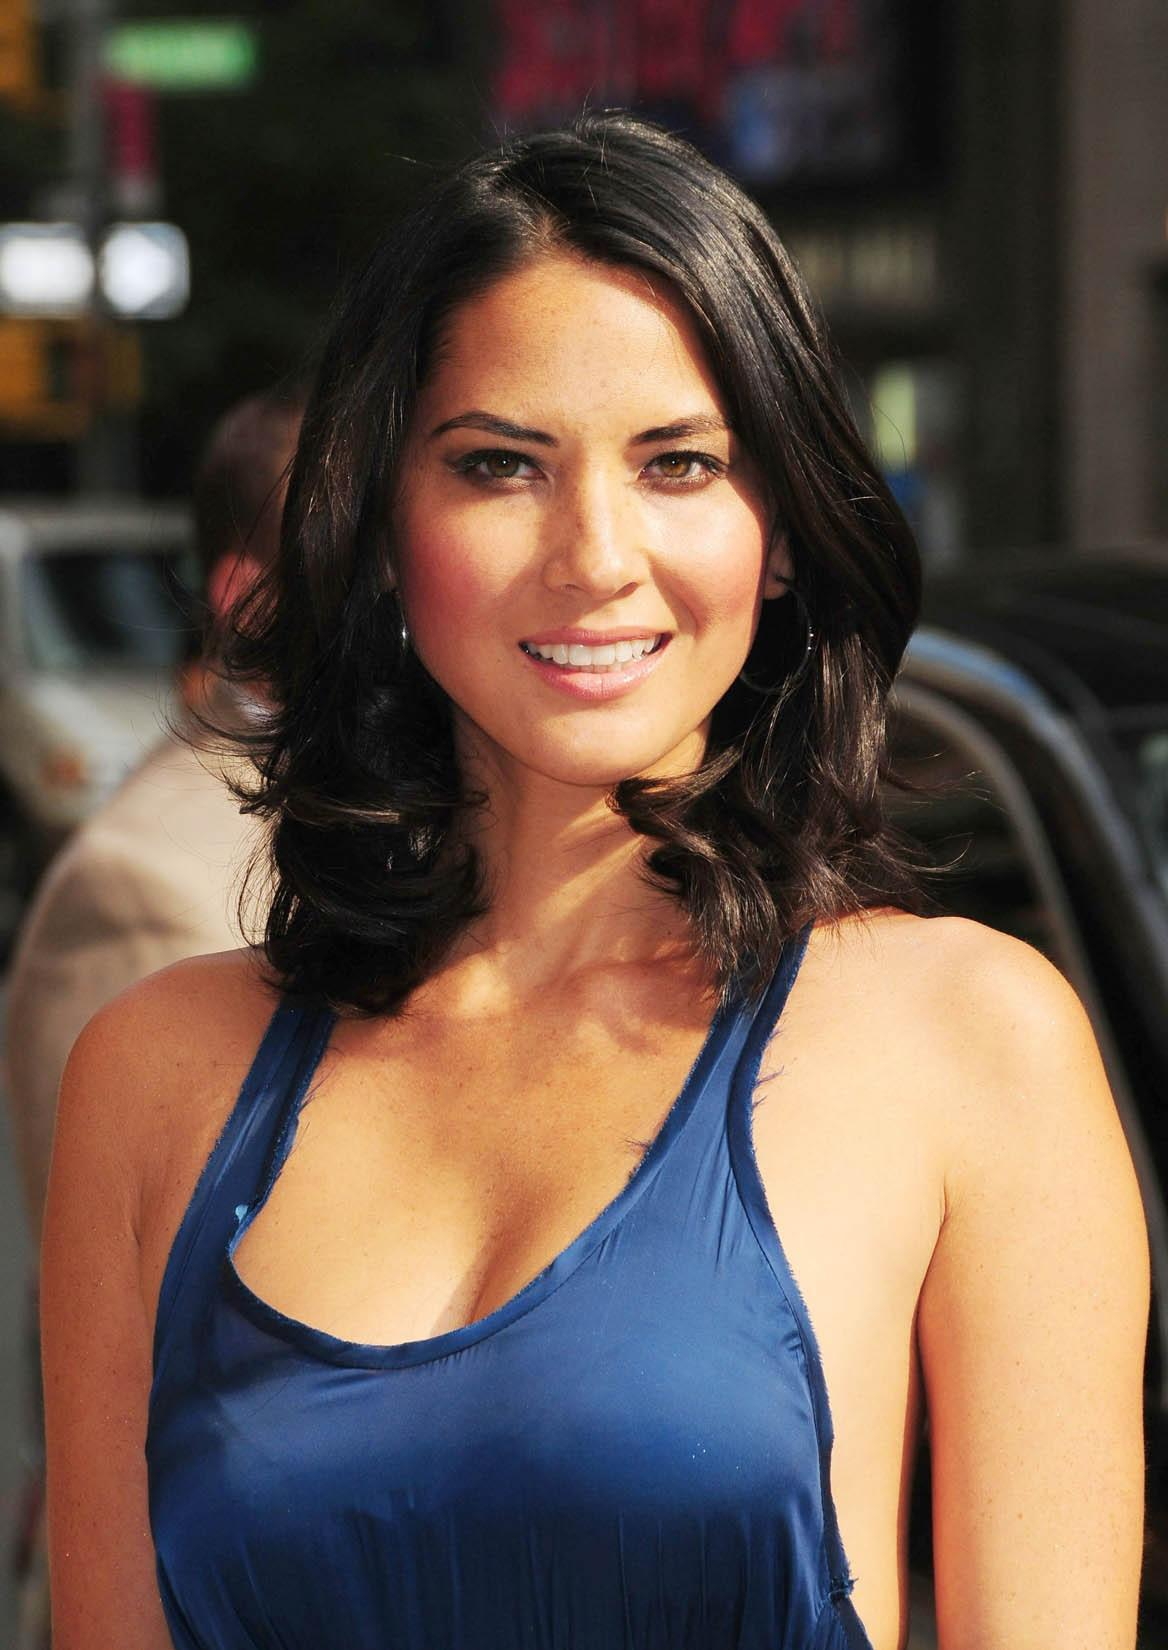 Olivia Munn Iphone Sexy Wallpapers